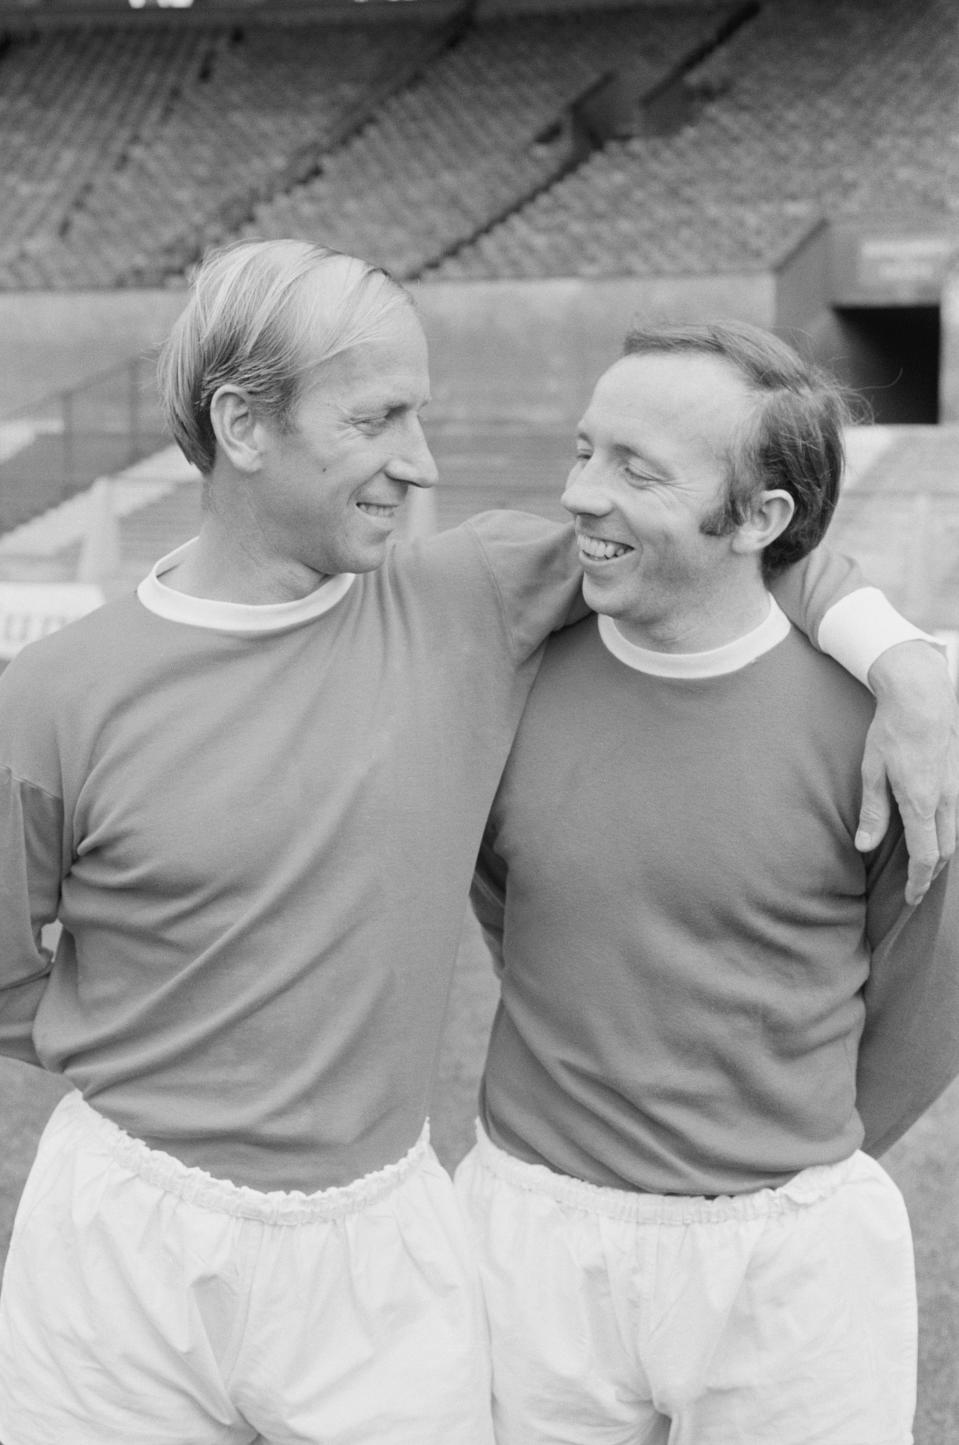 English soccer players Bobby Charlton and Nobby Stiles of Manchester United FC, UK, 1st August 1968. (Photo by Evening Standard/Hulton Archive/Getty Images)